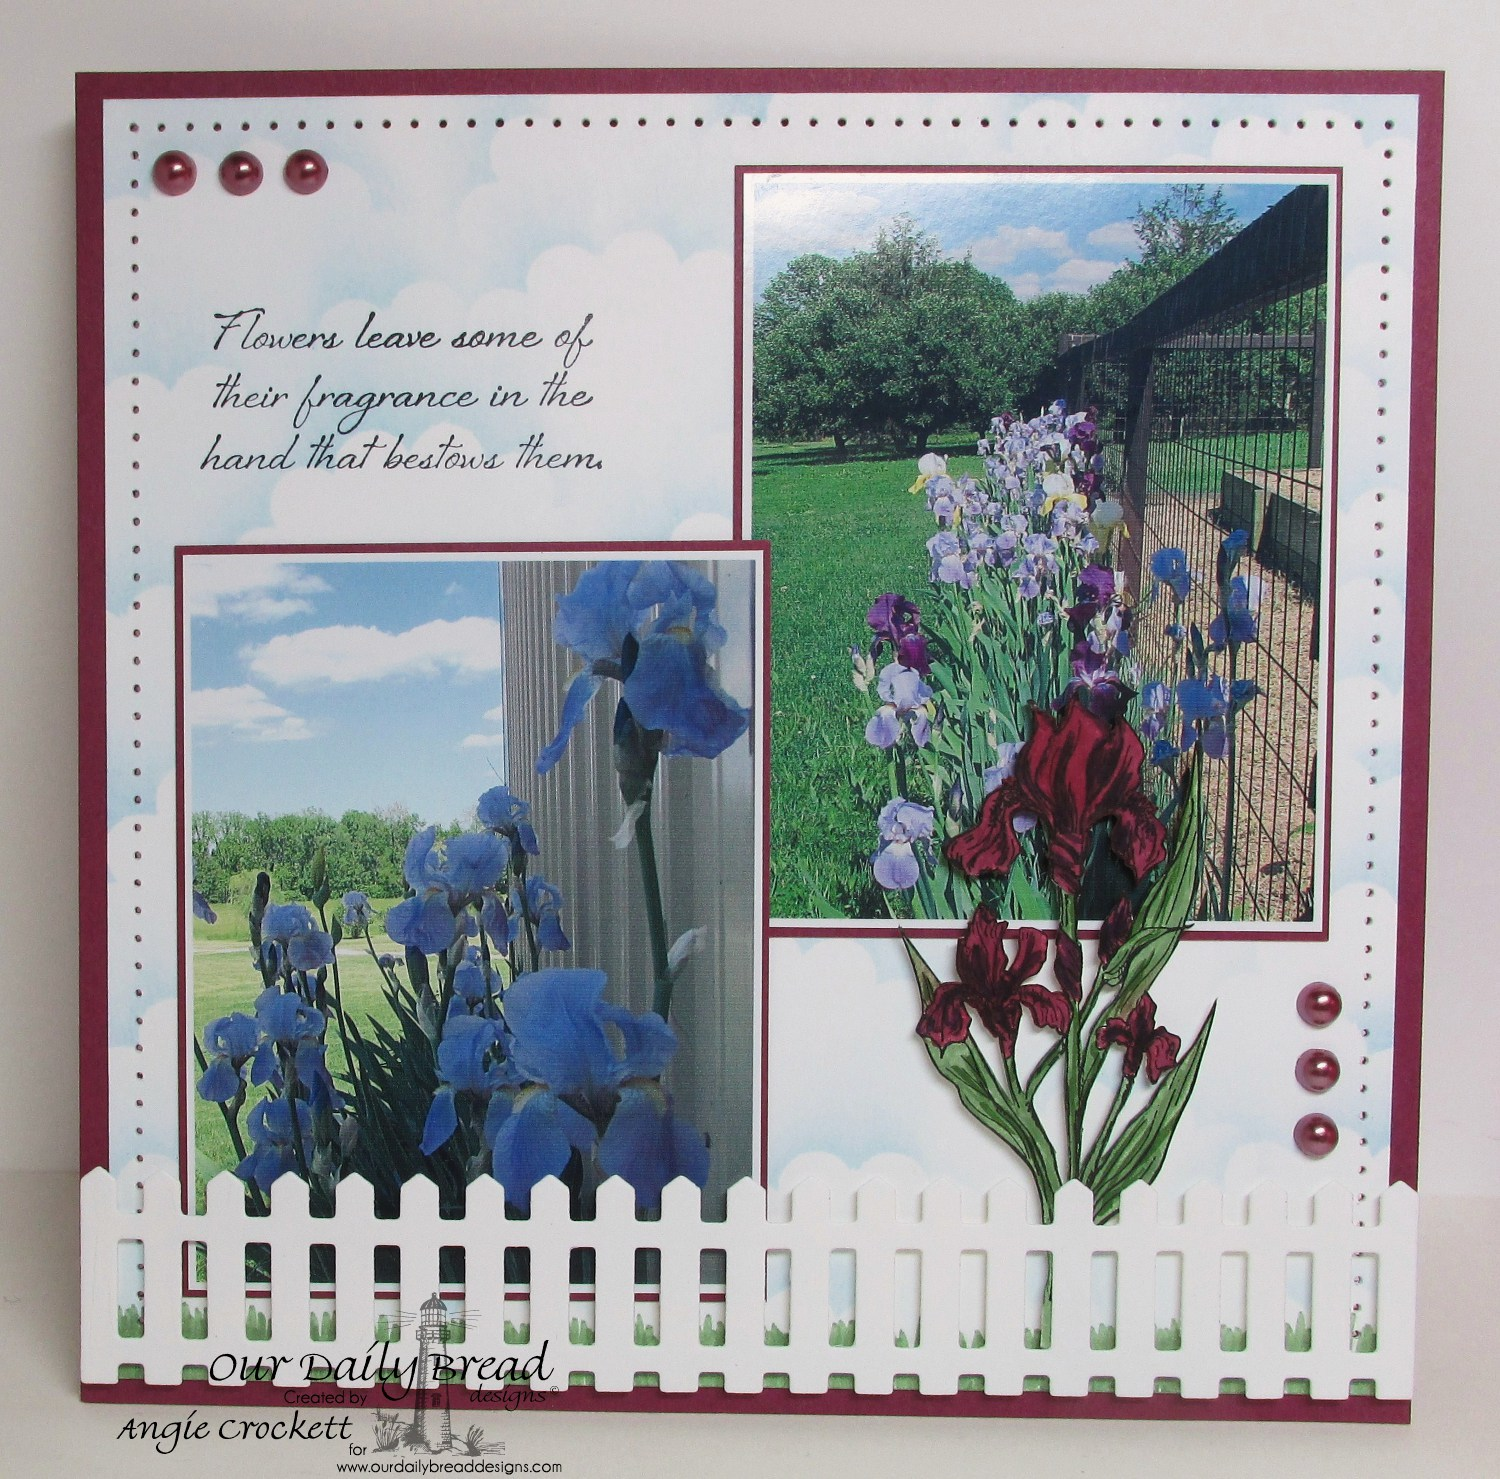 Stamps - Our Daily Bread Designs Iris, ODBD Custom Fence Die